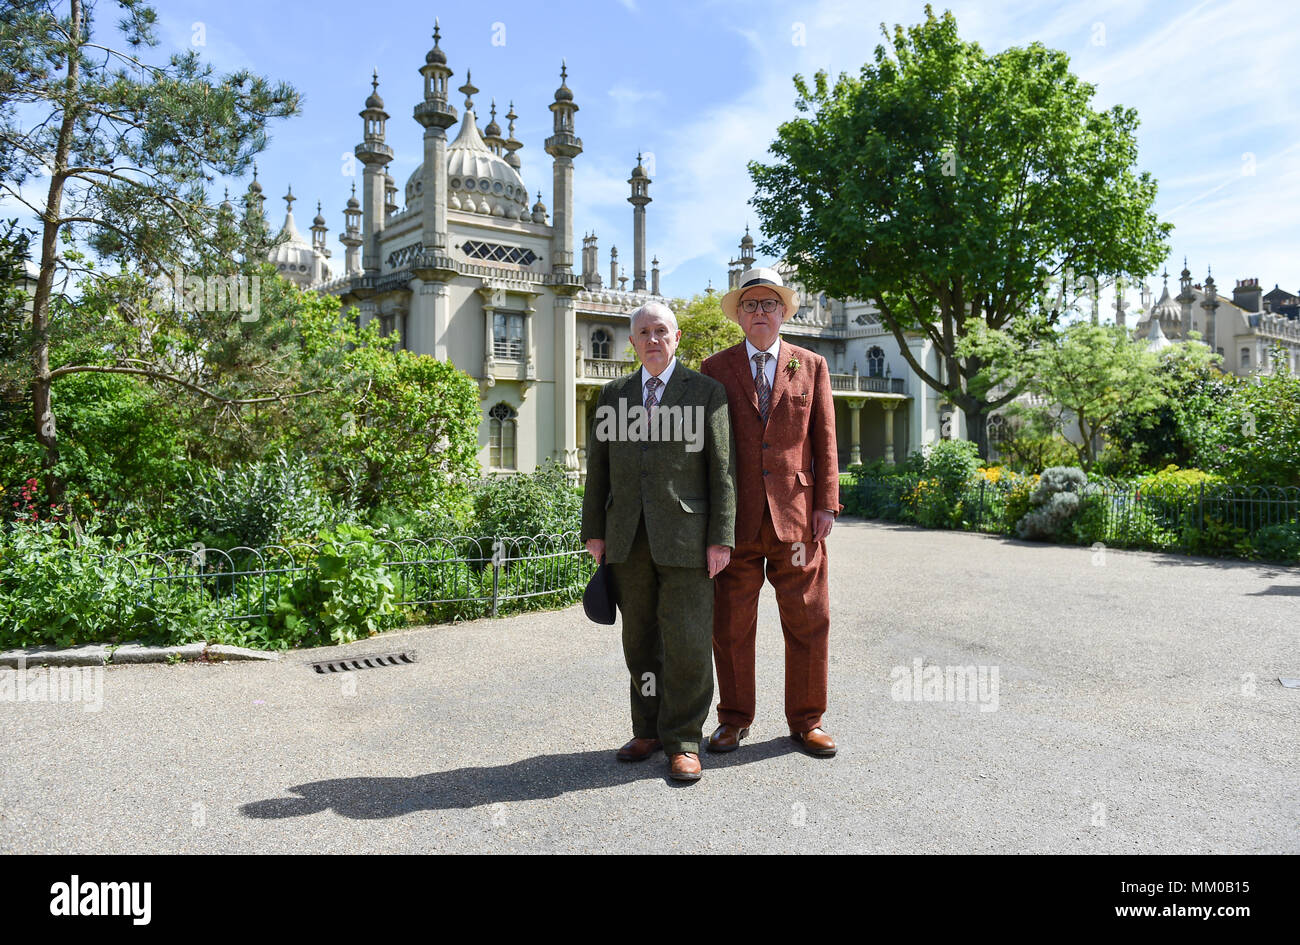 Brighton UK 9th May 2018 - Renowned artists Gilbert (left) and George in the Royal Pavilion Gardens in Brighton before visiting their exhibition at Brighton Museum and Art Gallery which is showing until September until September .  Photograph taken by Simon Dack Credit: Simon Dack/Alamy Live News Stock Photo